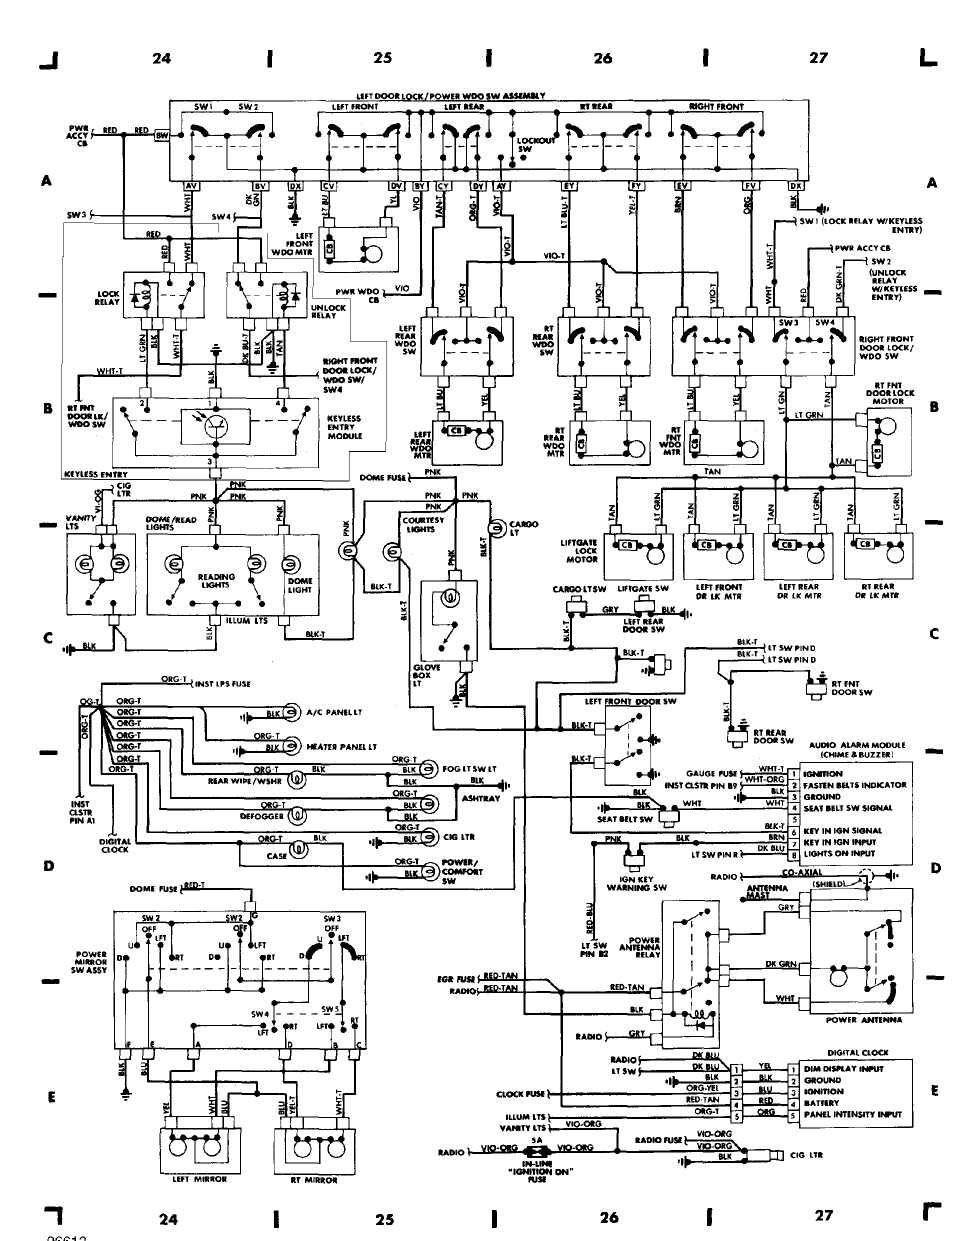 wiring_diagrams_html_61f5e0ad 2000 jeep xj wiring diagram 1998 jeep cherokee wiring diagrams pdf Basic Electrical Wiring Diagrams at mifinder.co